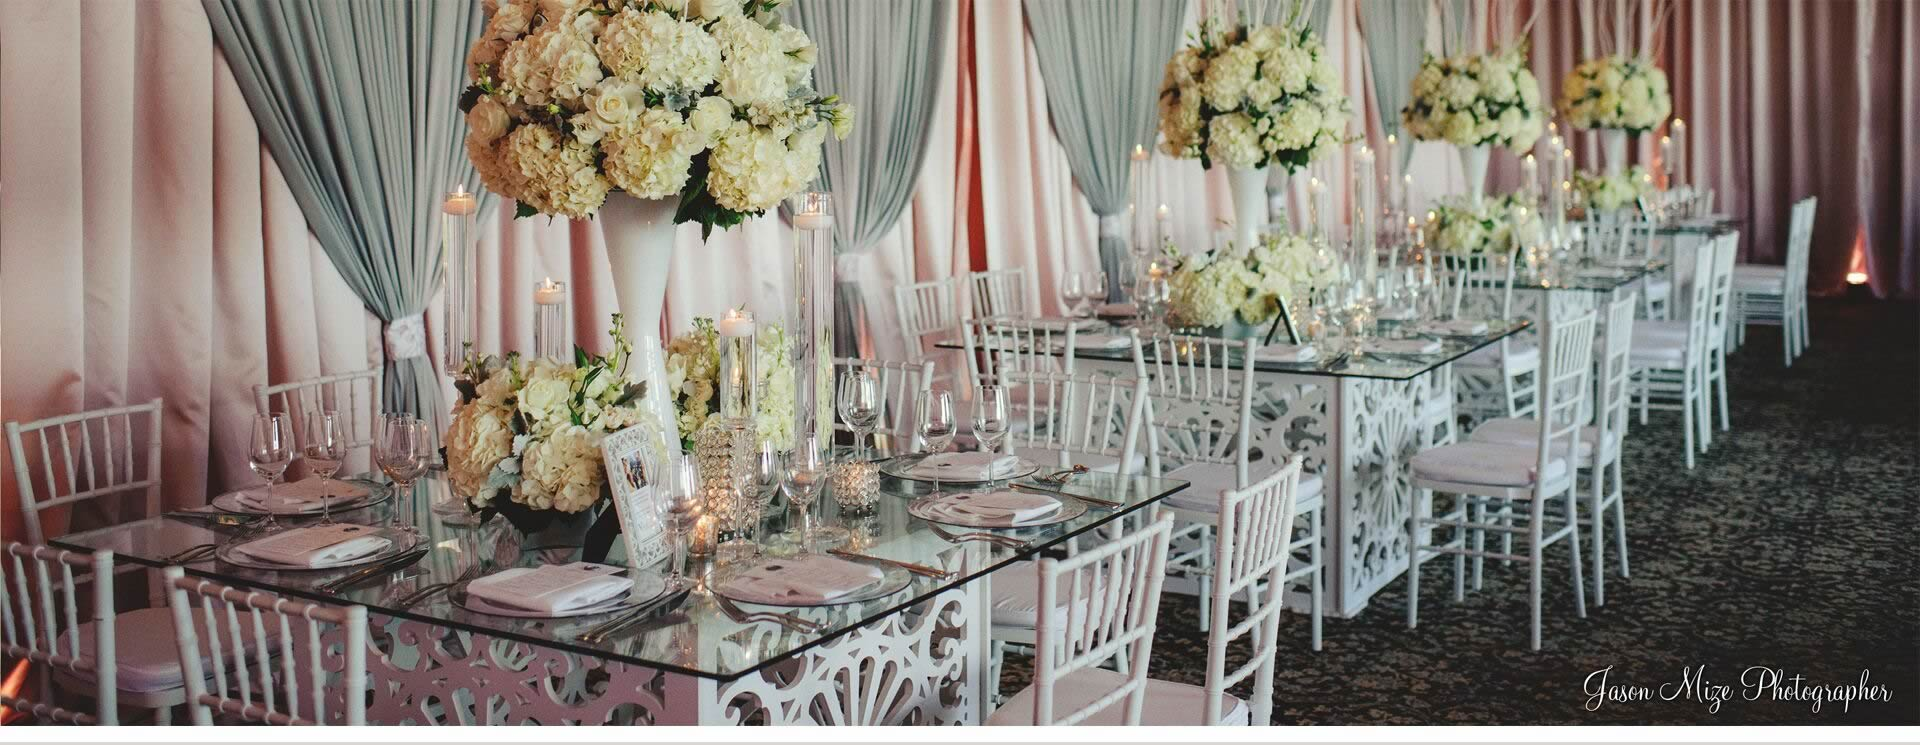 Wedding Party and Event Rentals available Orlando Florida